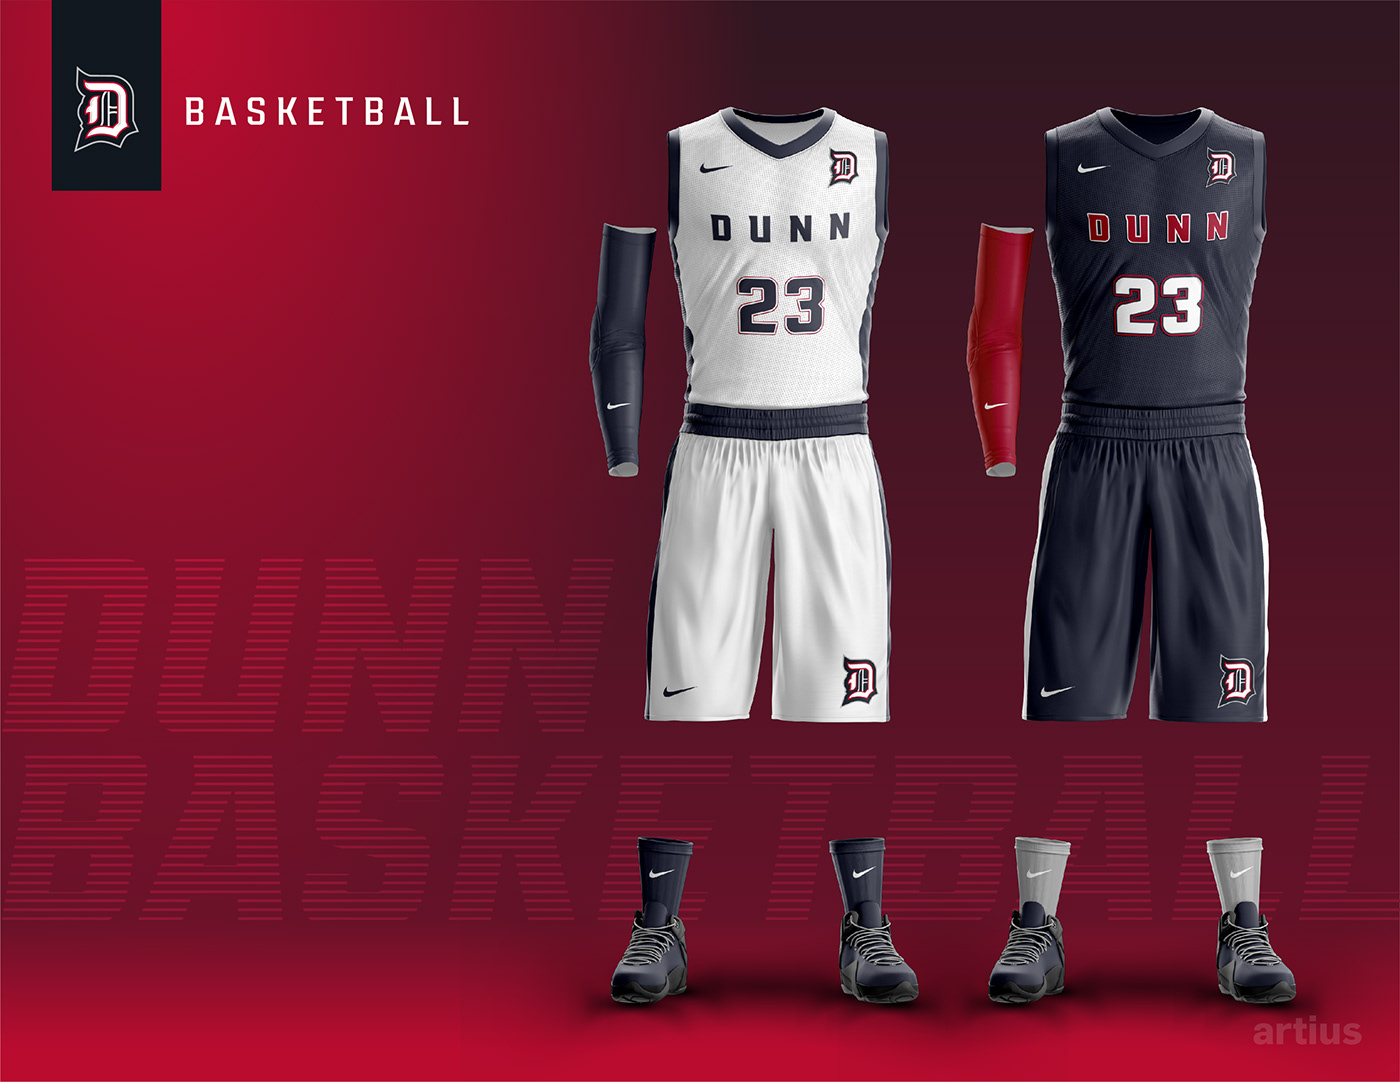 Image may contain: sports uniform